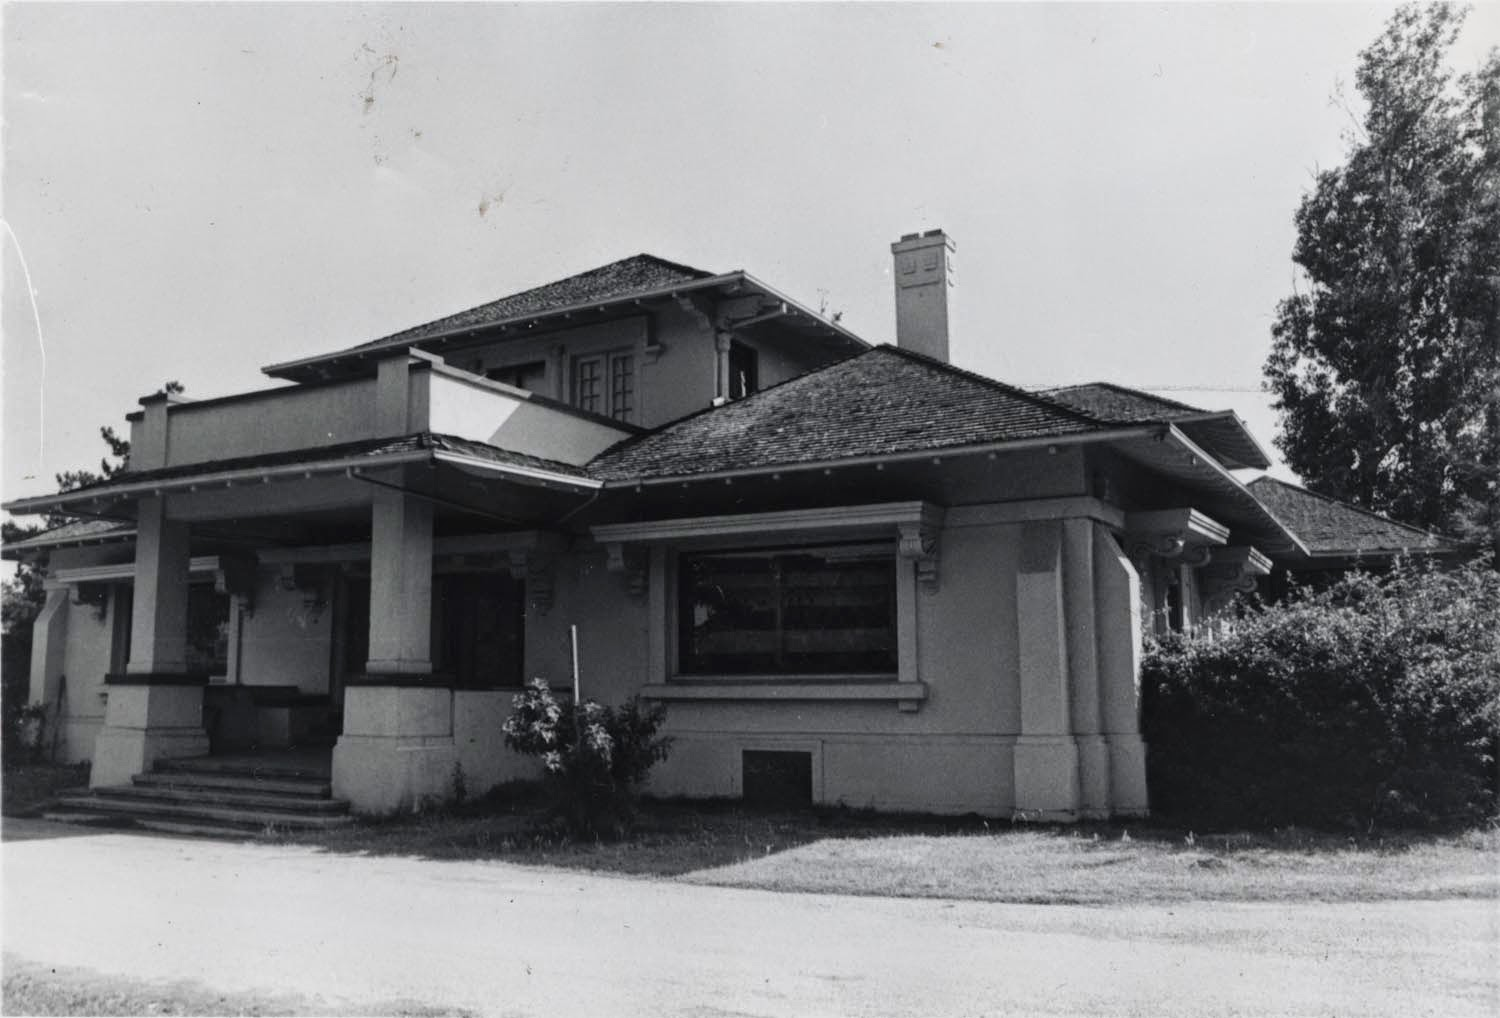 The historic Kelley House (1910) in the 1950s (image from VDA Group)